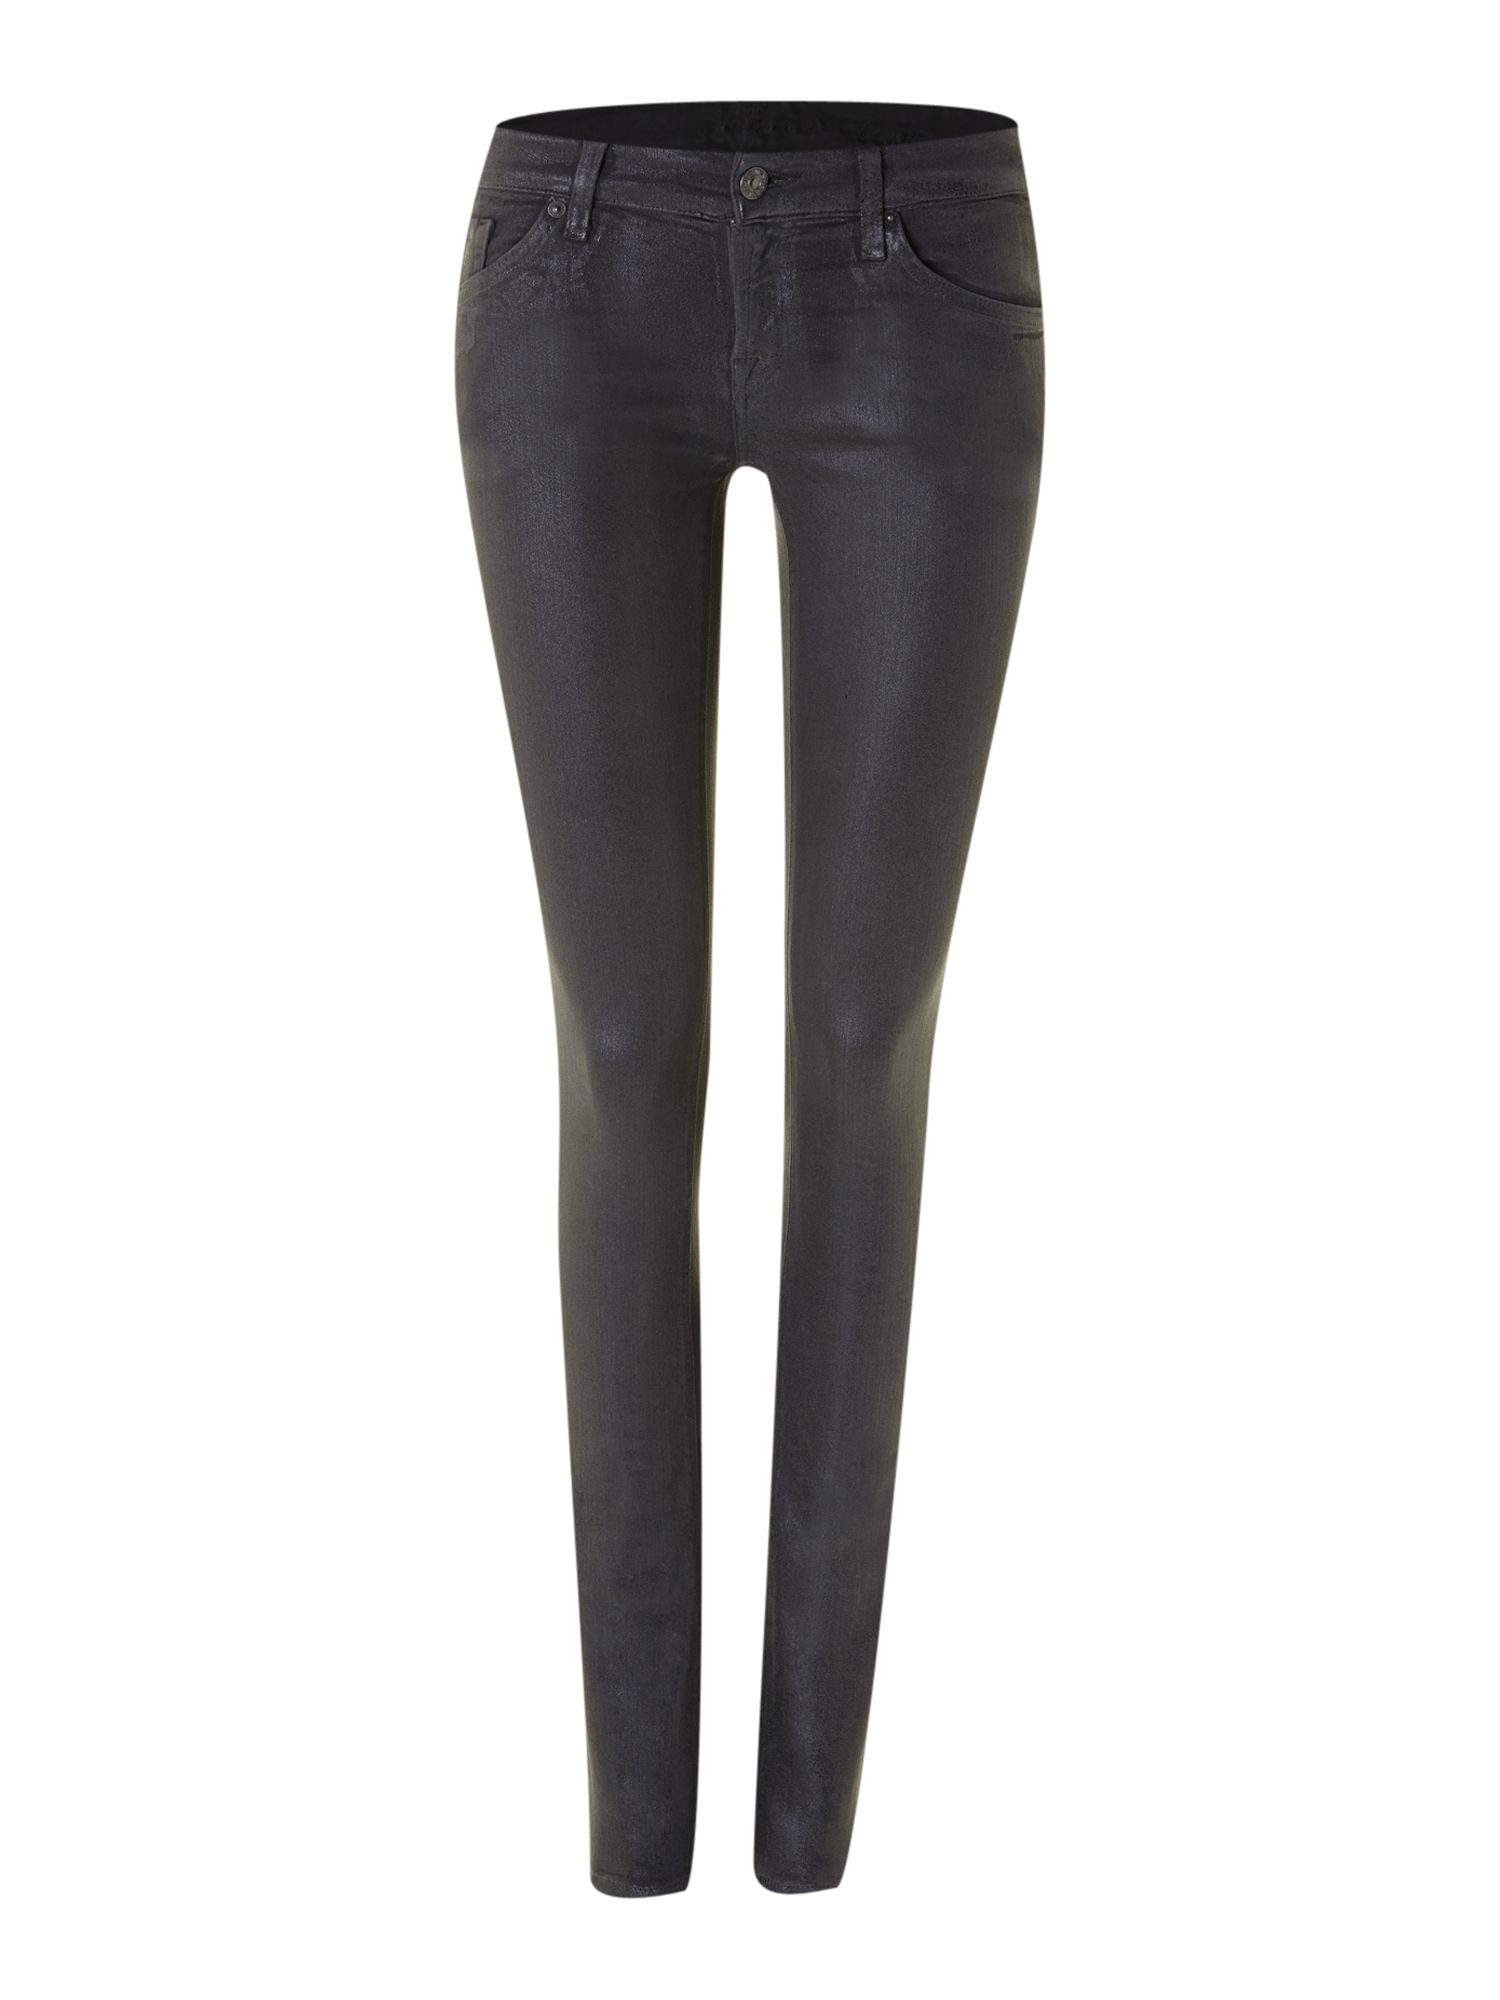 Olivya skinny coated jeans in Anthracite Grey